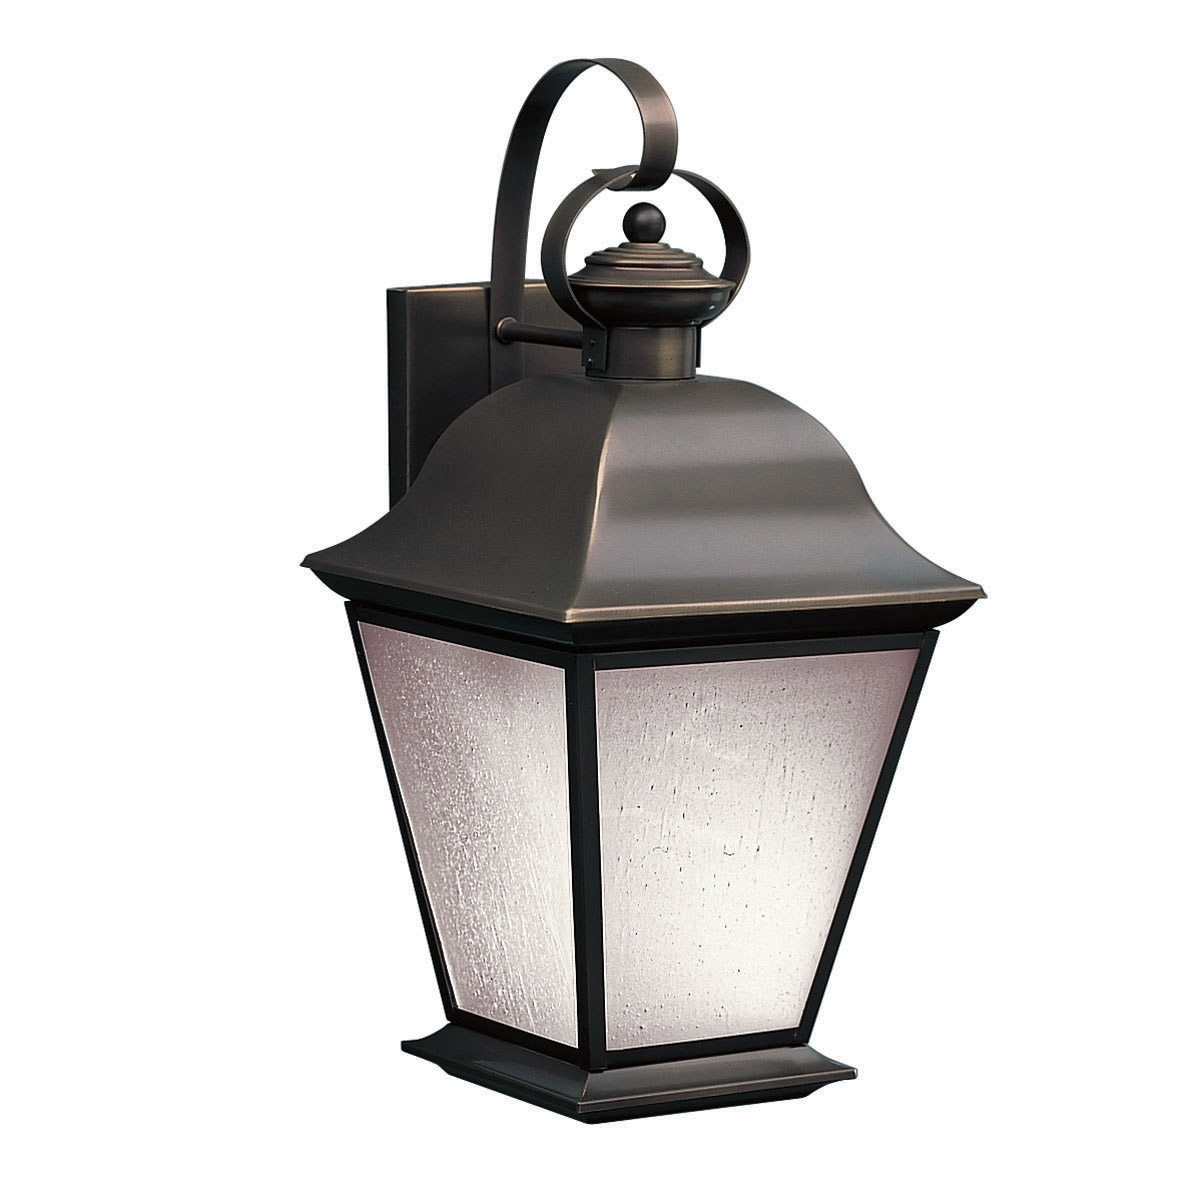 Outdoor Lamp Lanterns Within Most Popular Wall Lights Design: Solar Wall Mounted Outdoor Lights In, Solar (View 7 of 20)